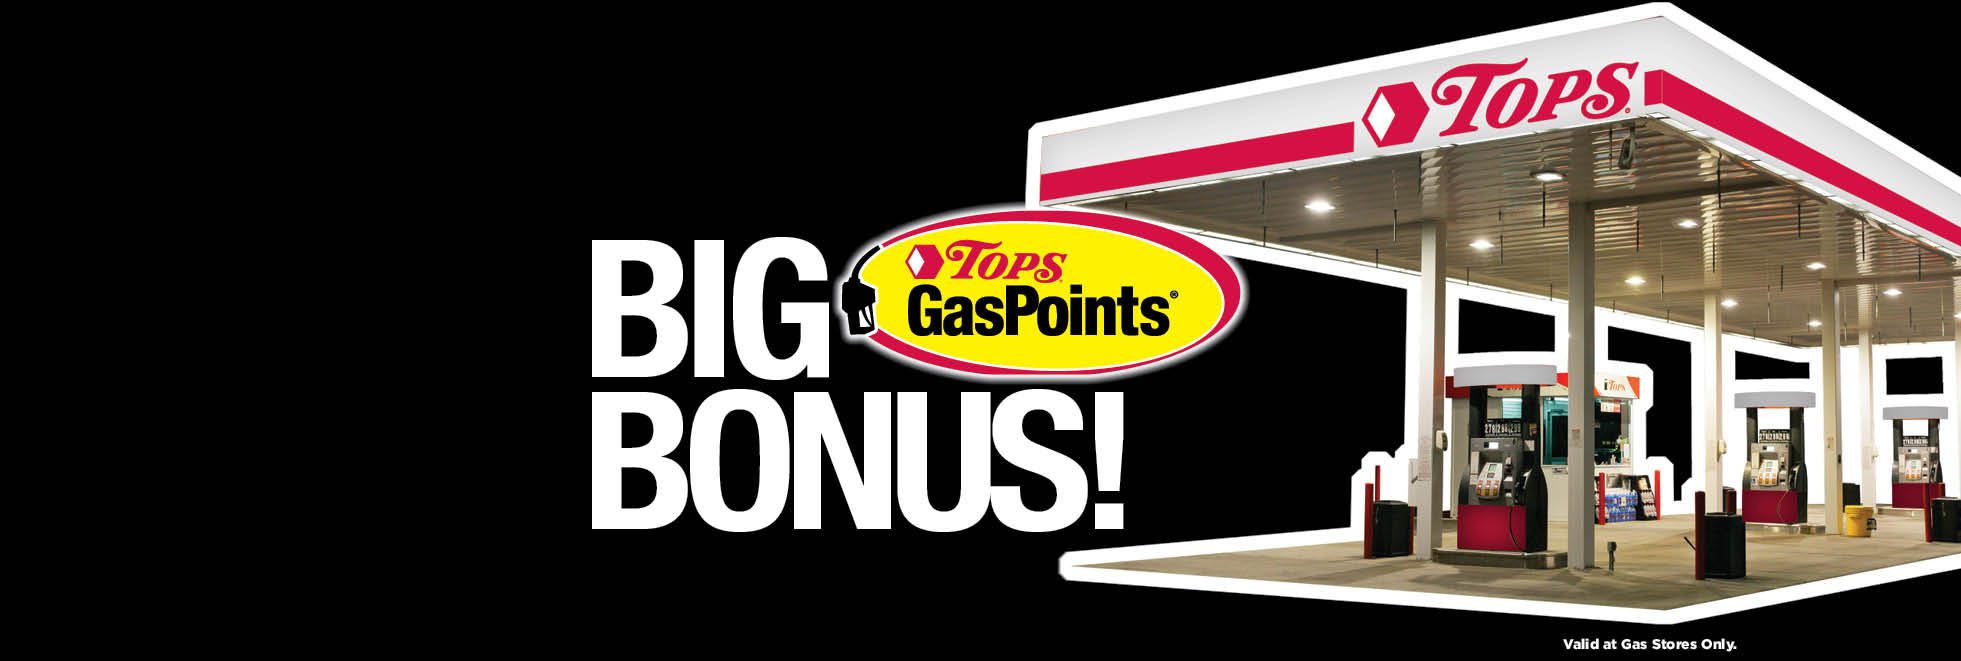 Big TOPS GasPoints Bonus